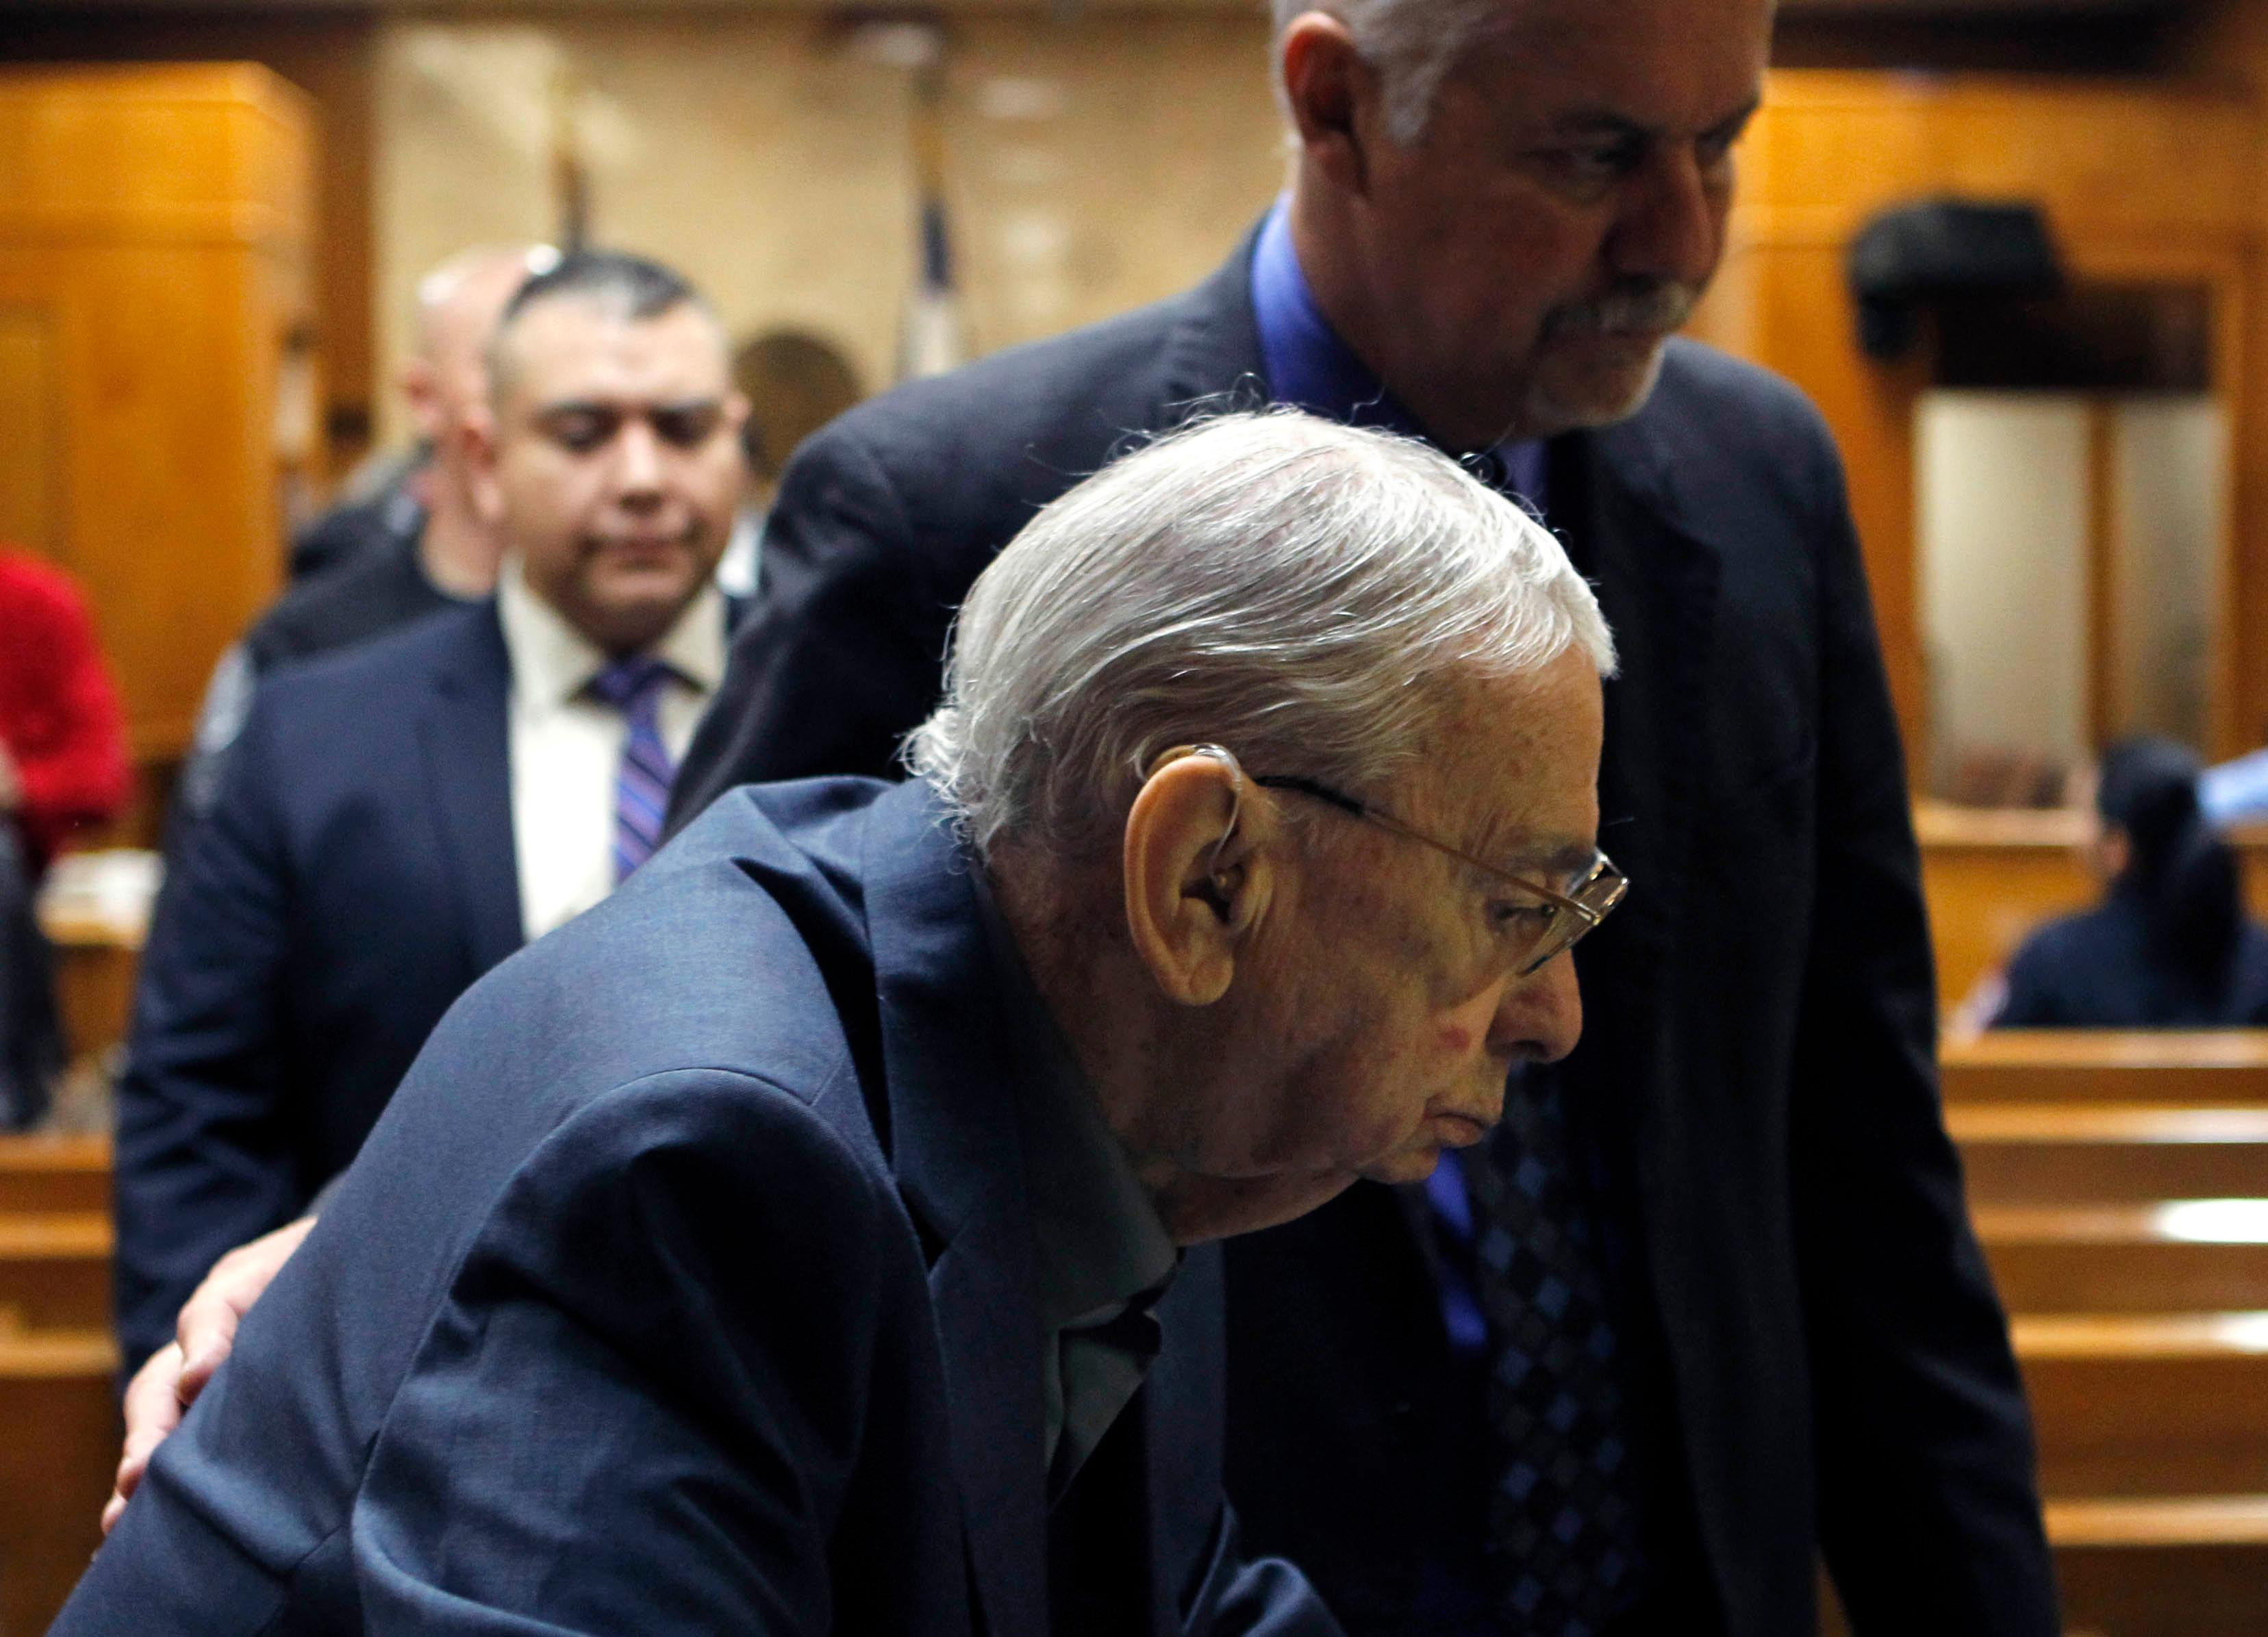 John Bernard Feit leaves the 92nd state District Court with defense attorney A. Ricardo Flores during a break in testimony in Feit's trial for the 1960 murder of Irene Garza Wednesday, December 6, 2017, at the Hidalgo County Courthouse in Edinburg. (Nathan Lambrecht/The Monitor/Pool)